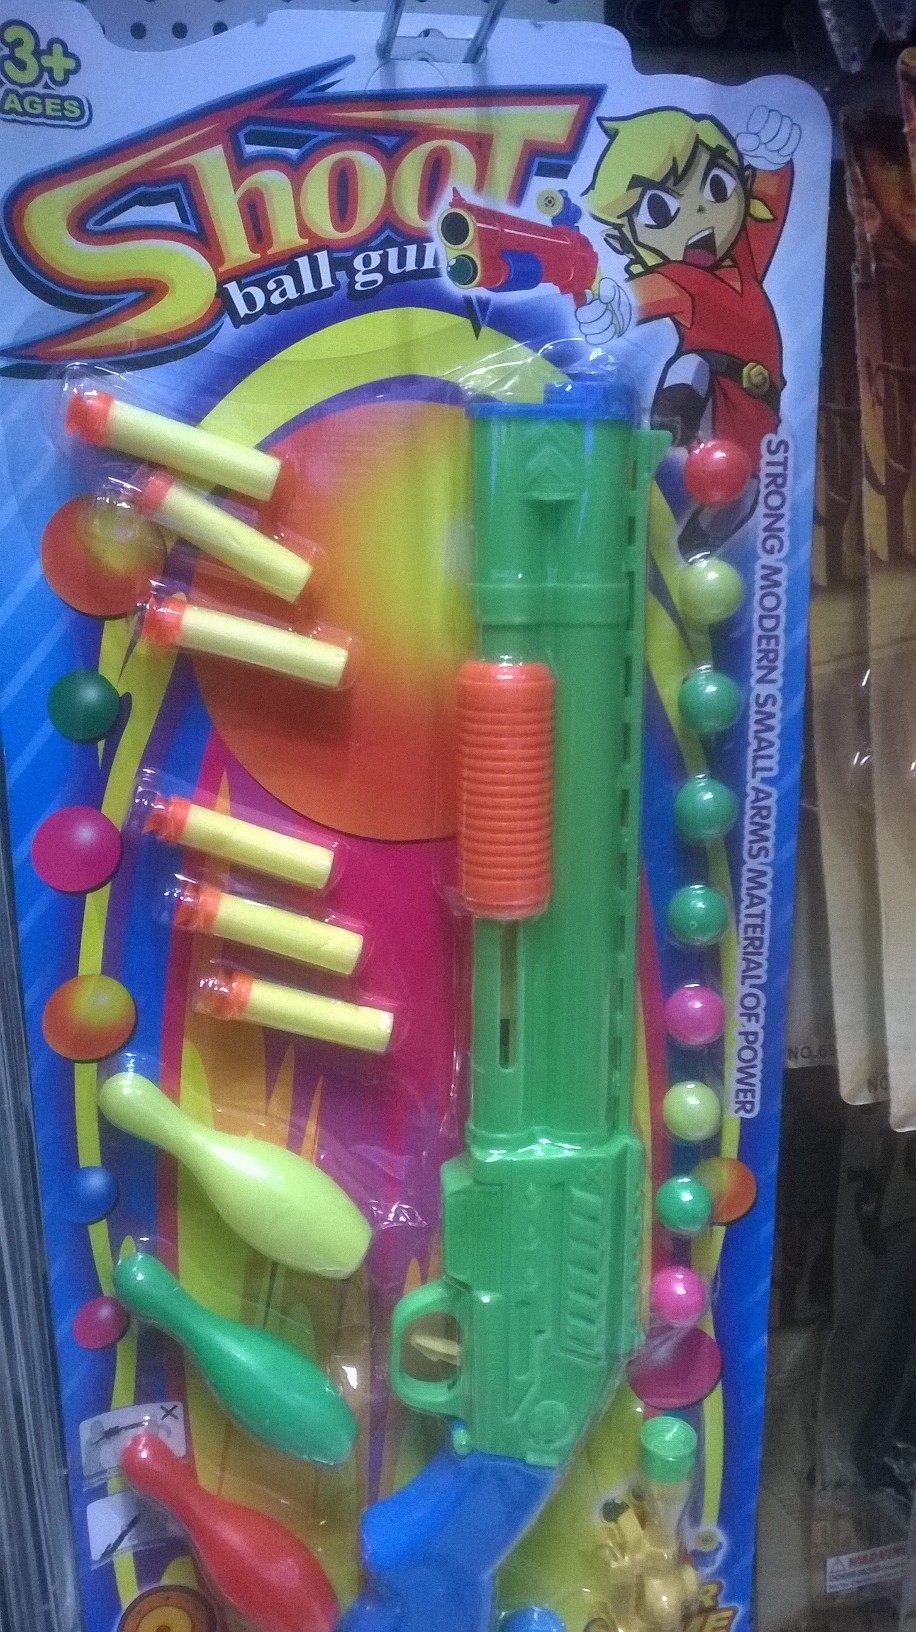 Shoot Toy Gun Set